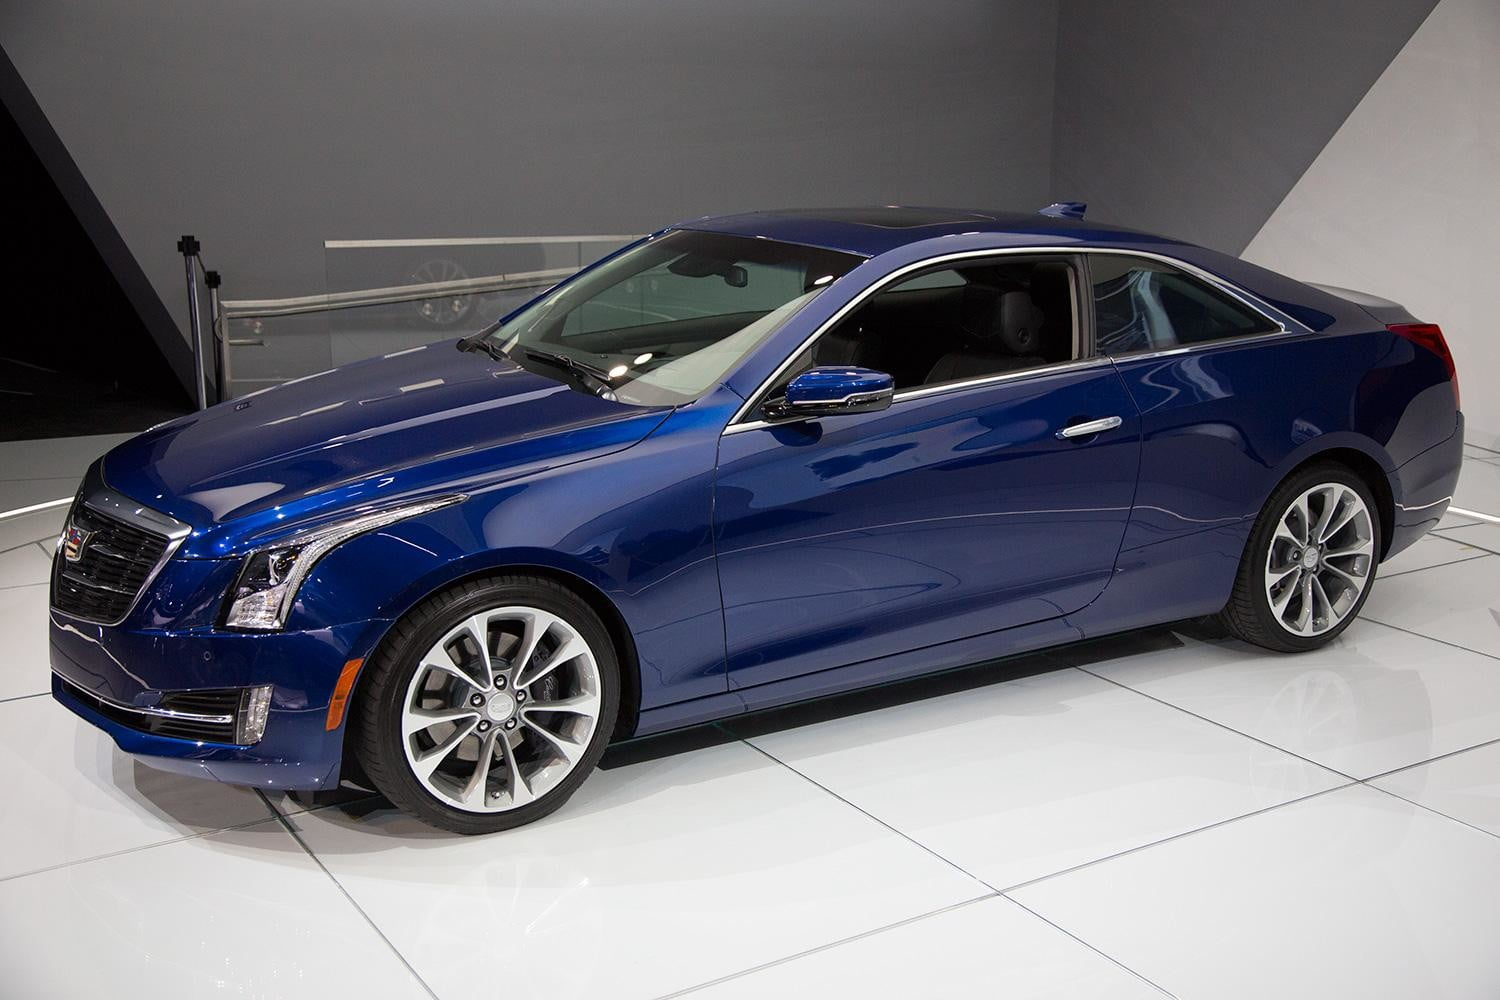 cadillac canada ats black profile side cars and coupe trend motor reviews chrome en rating